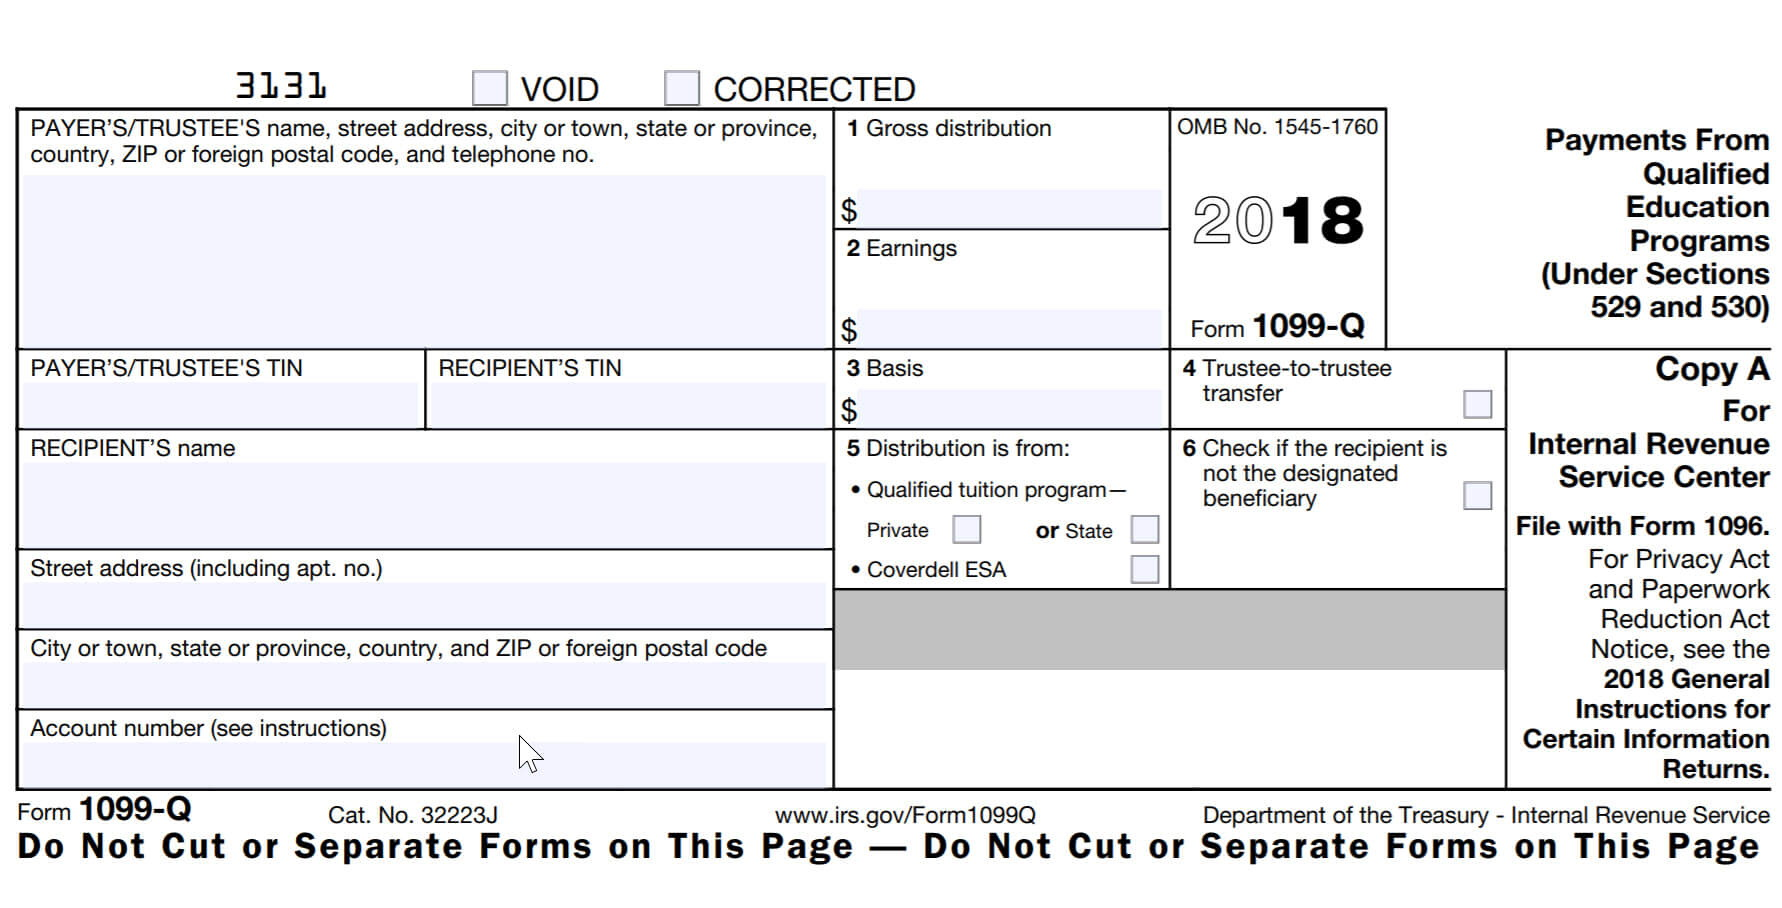 Irs Form 1099 S 2018